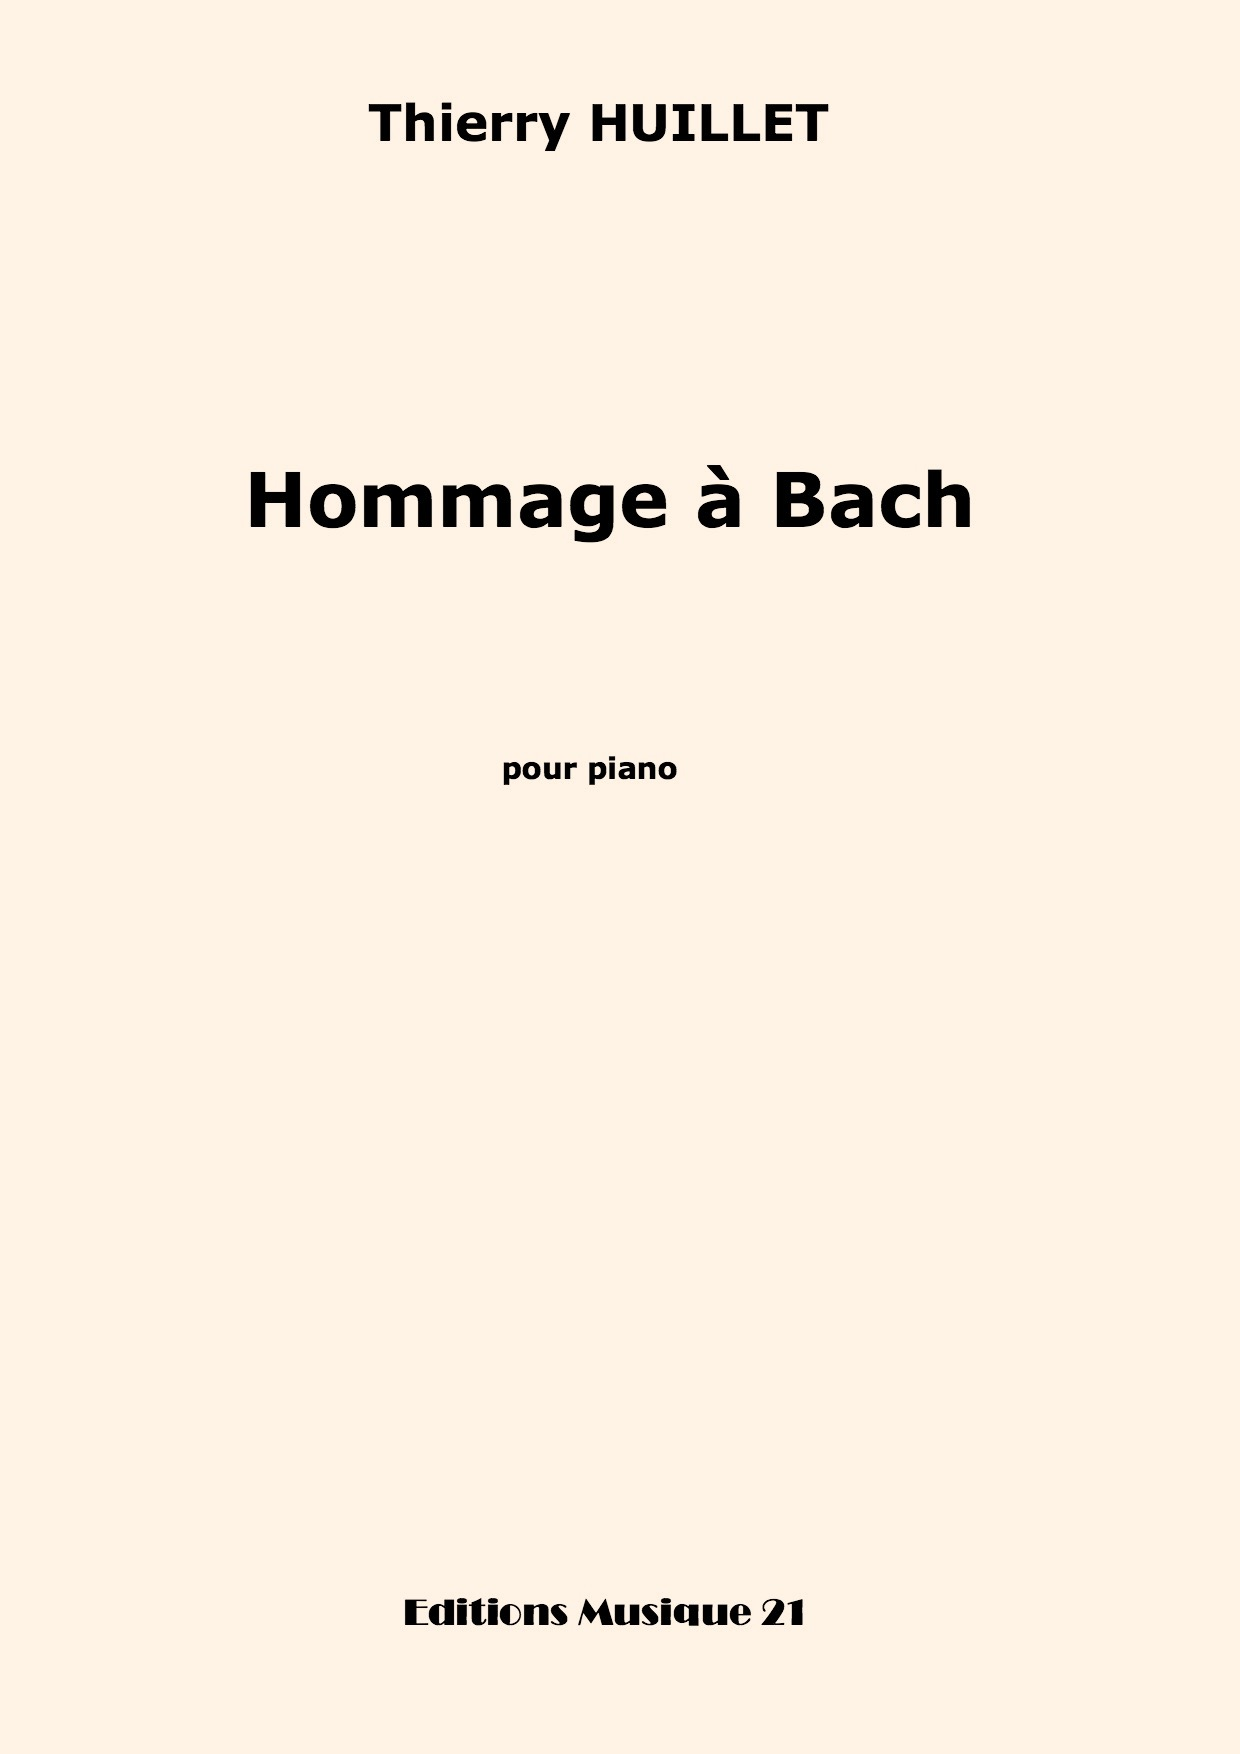 Thierry HUILLET – Hommage à Bach, For Solo Piano